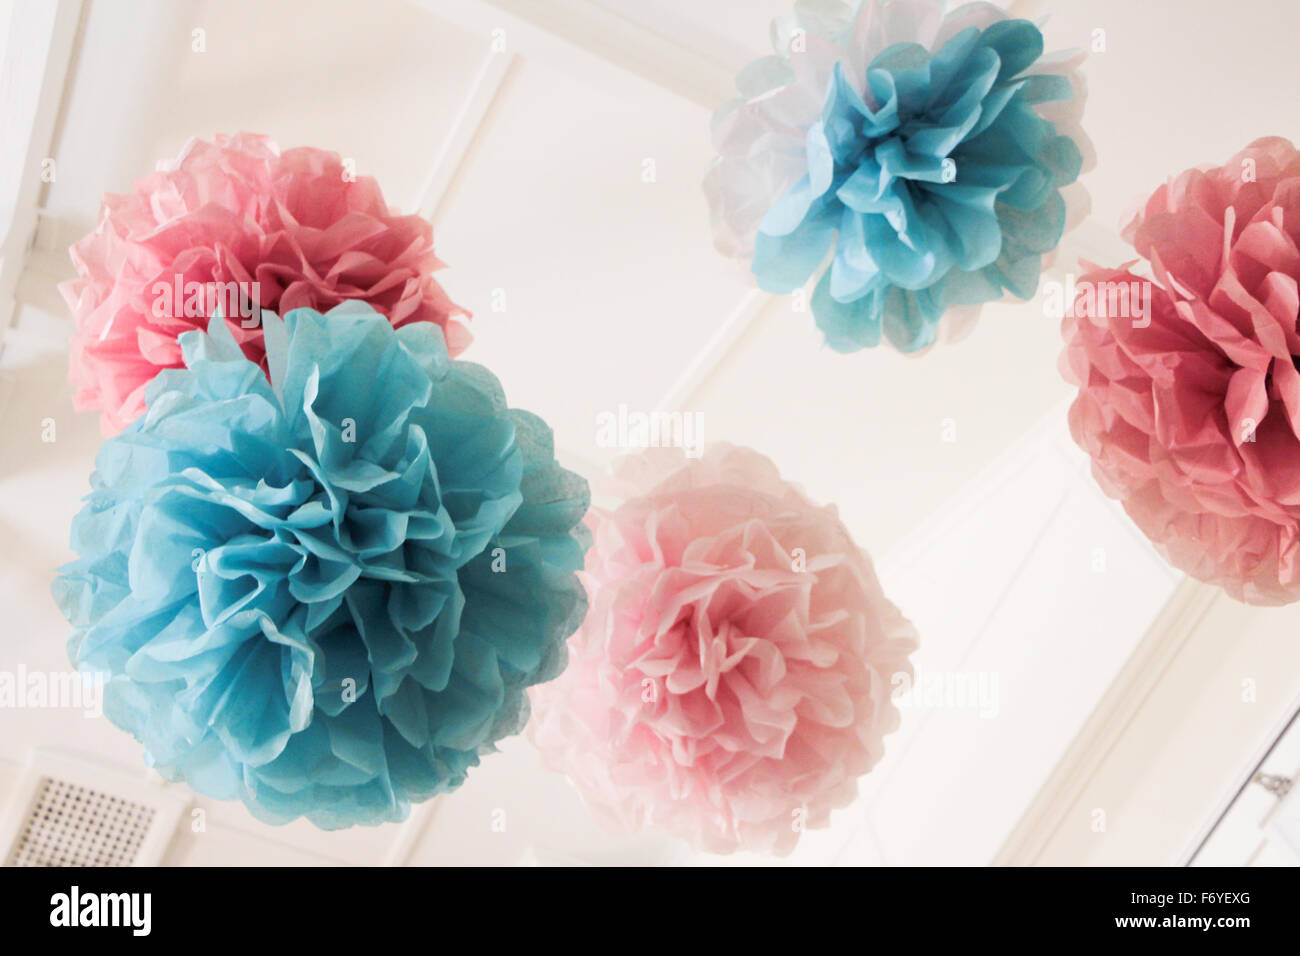 Pink And Blue Tissue Paper Pom Poms Hanging From Roof Rafters Stock